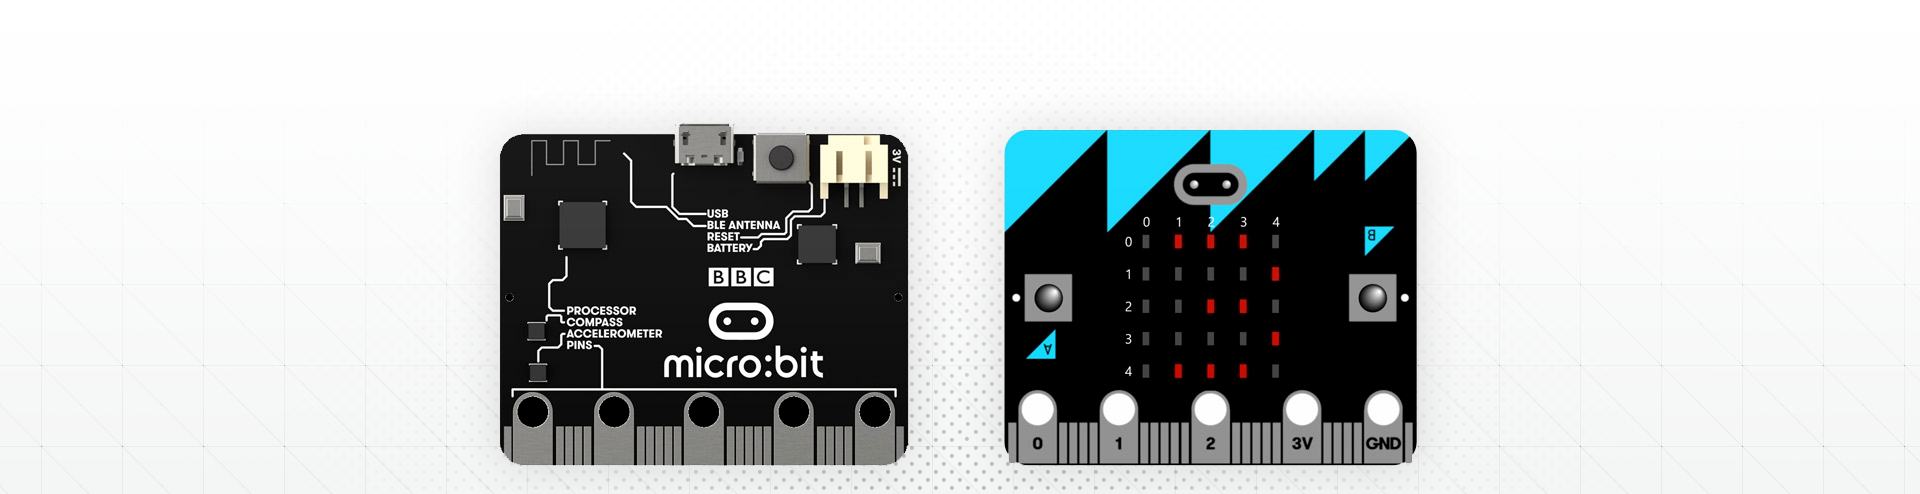 Microbit - HEROIMAGE